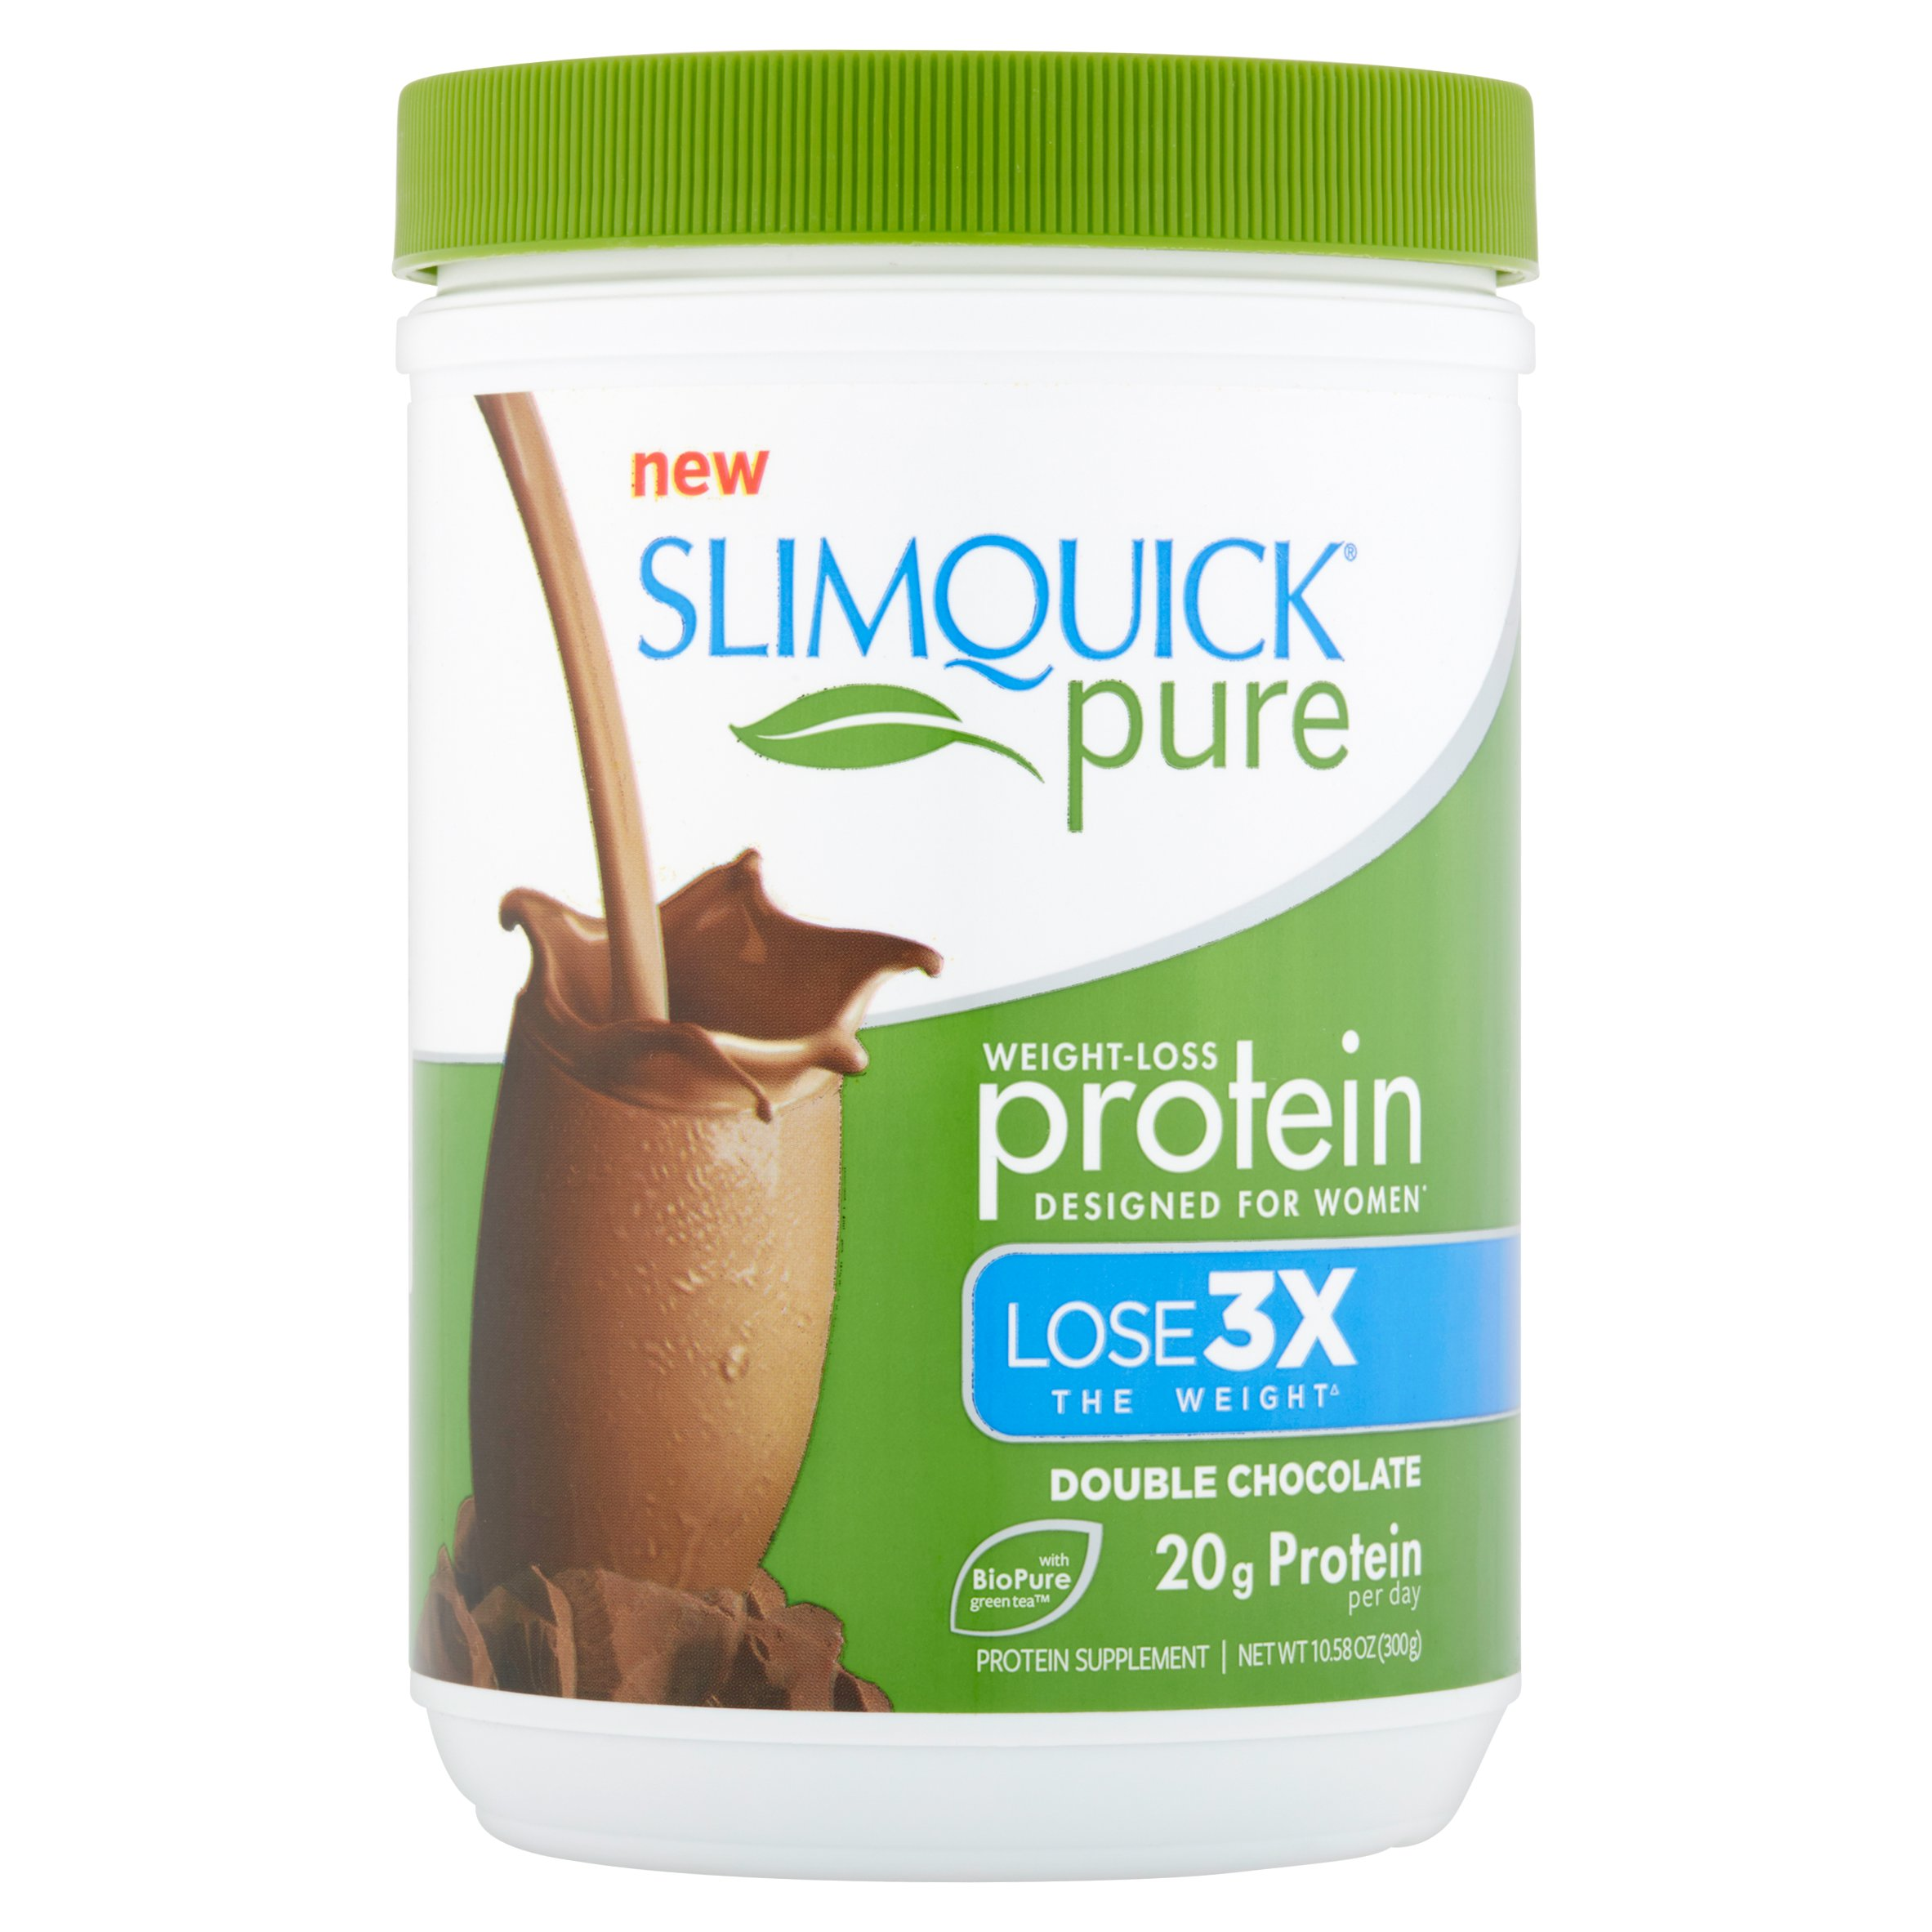 Slimquick Pure Weight-Loss Protein Double Chocolate, 10.58 oz ...